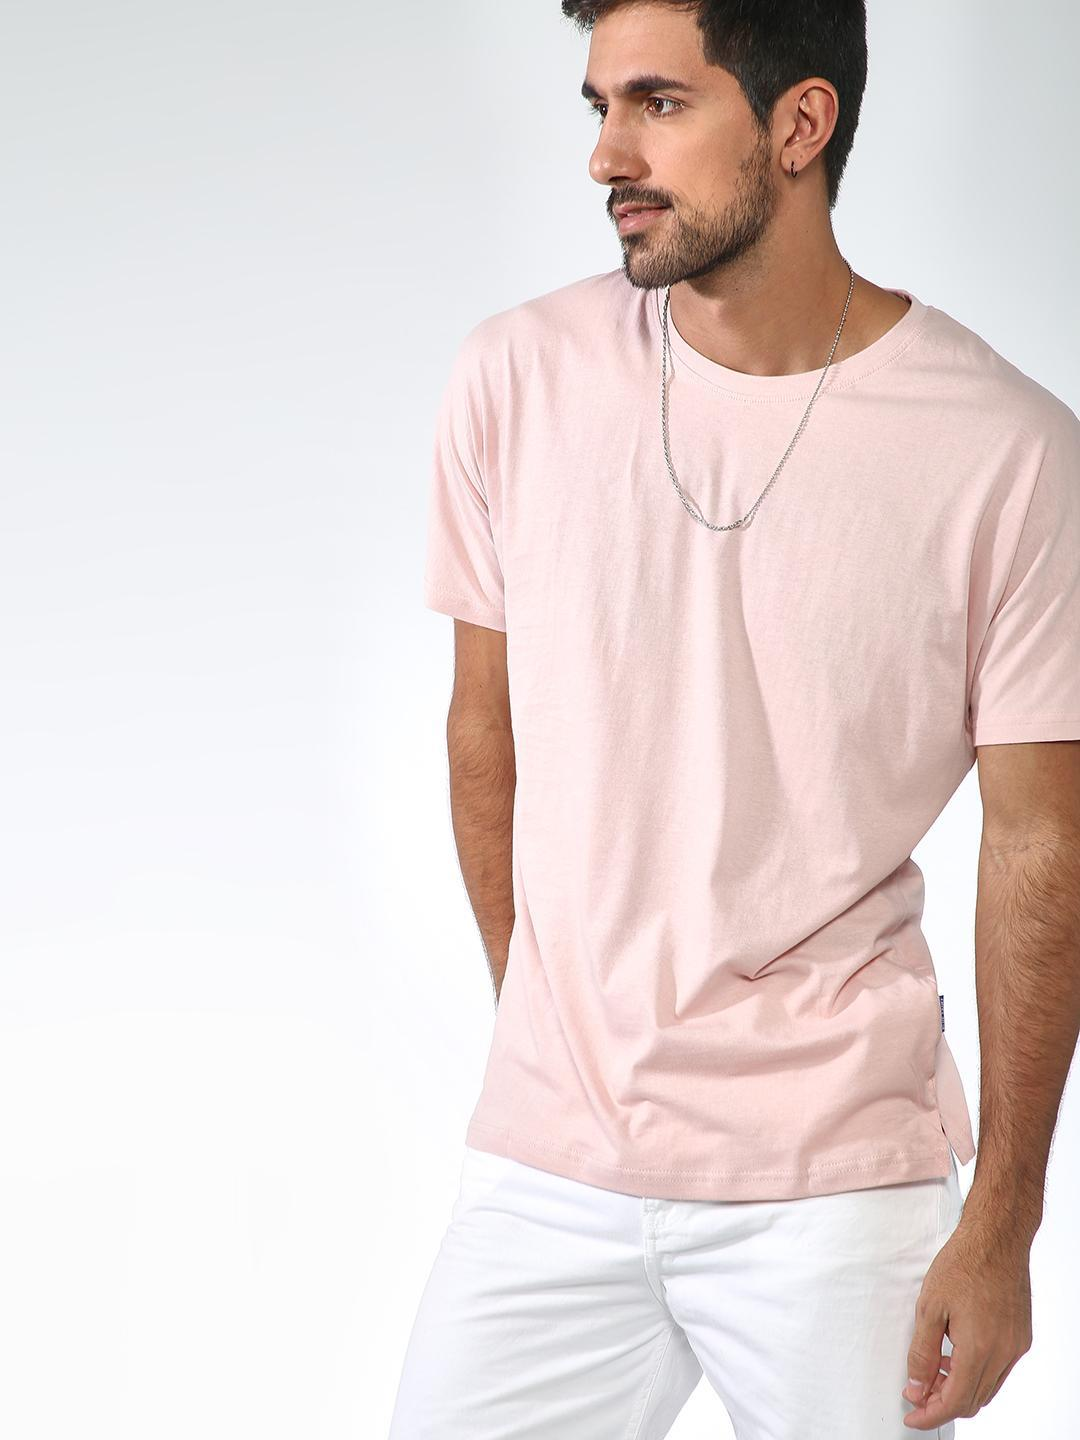 Blue Saint Pink BULE SAINT Basic Round Neck T-Shirt 1